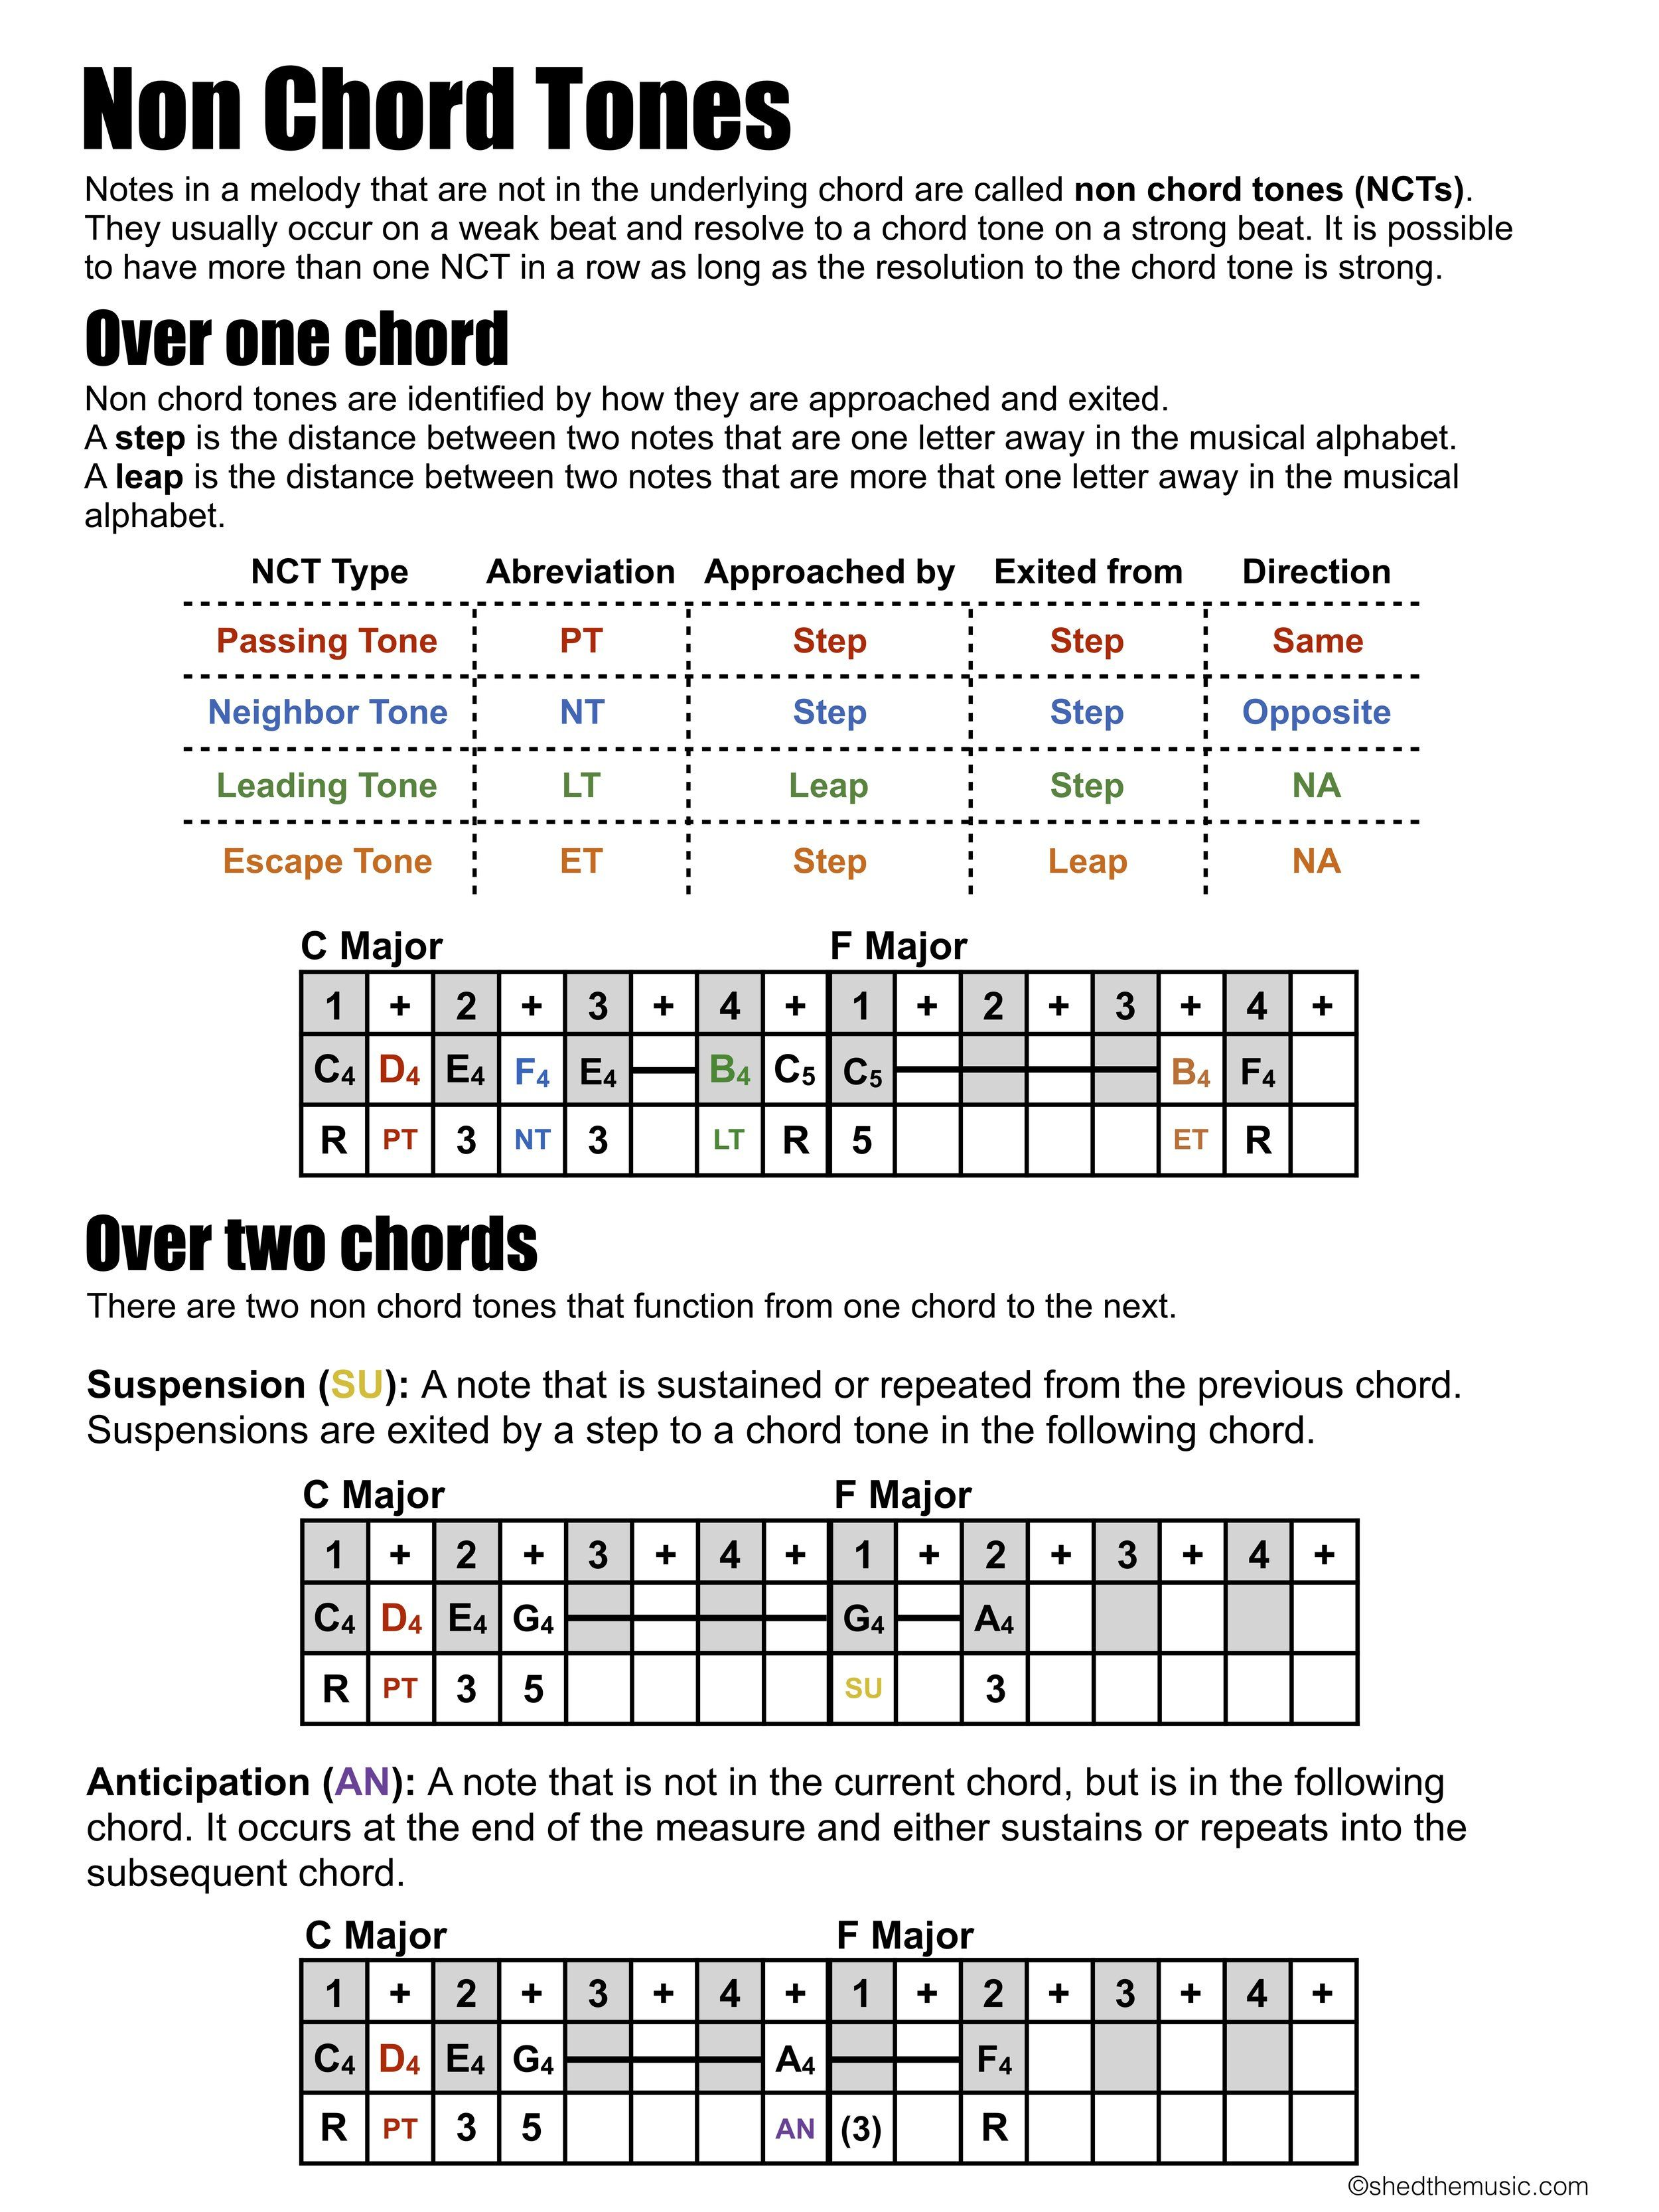 Melody Writing Non Chord Tones — The Shed   Music writing, Music ...